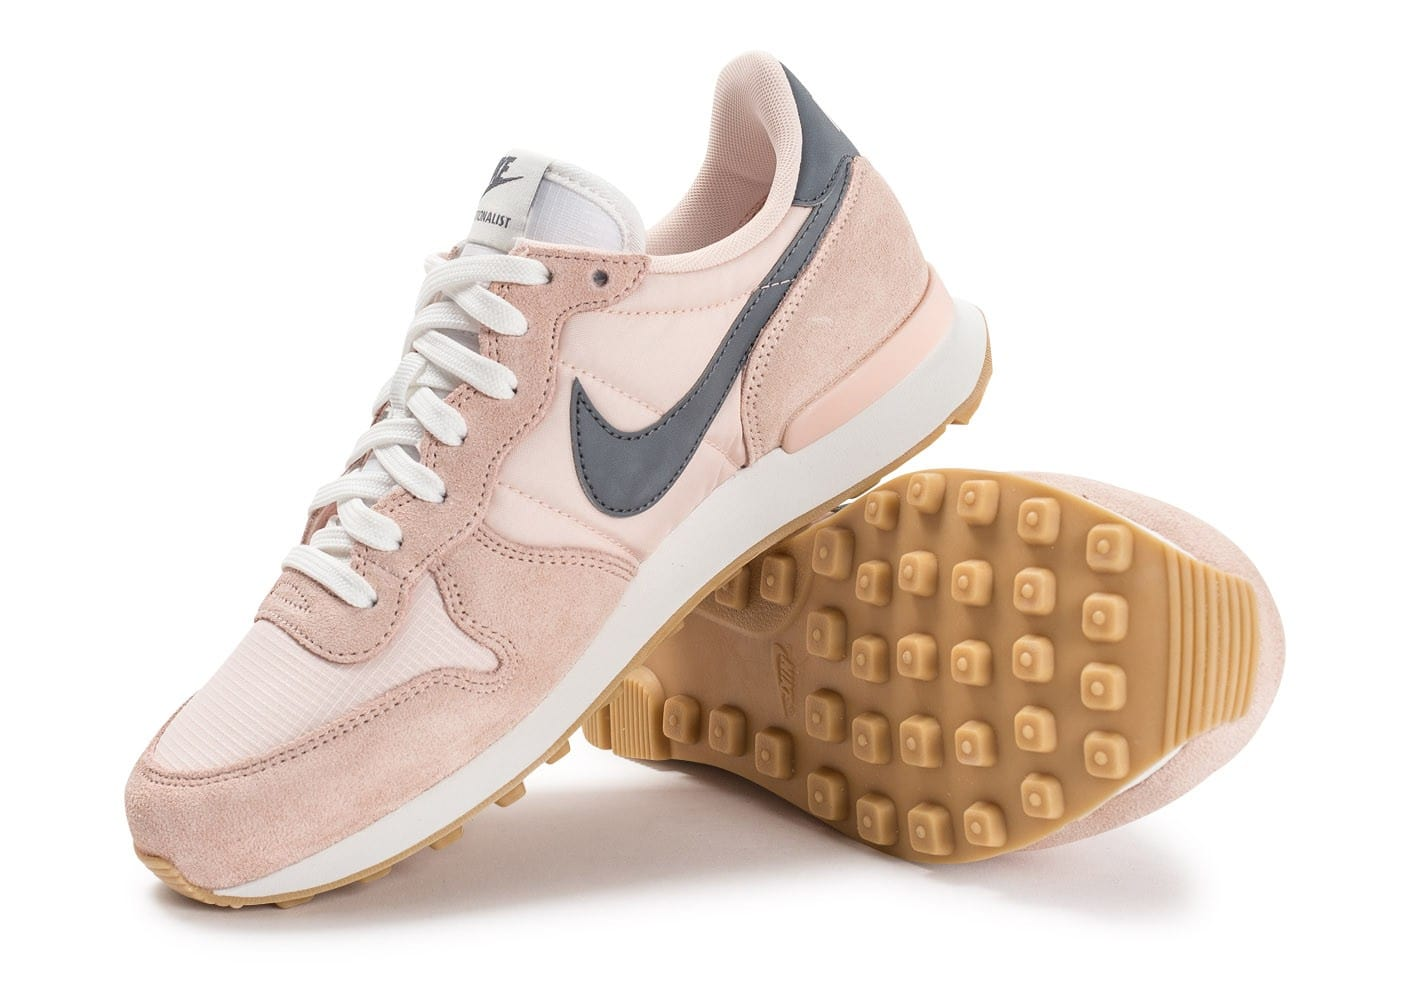 wholesale dealer c7fc4 c0081 ... Chaussures Nike Internationalist W rose pâle vue avant ...